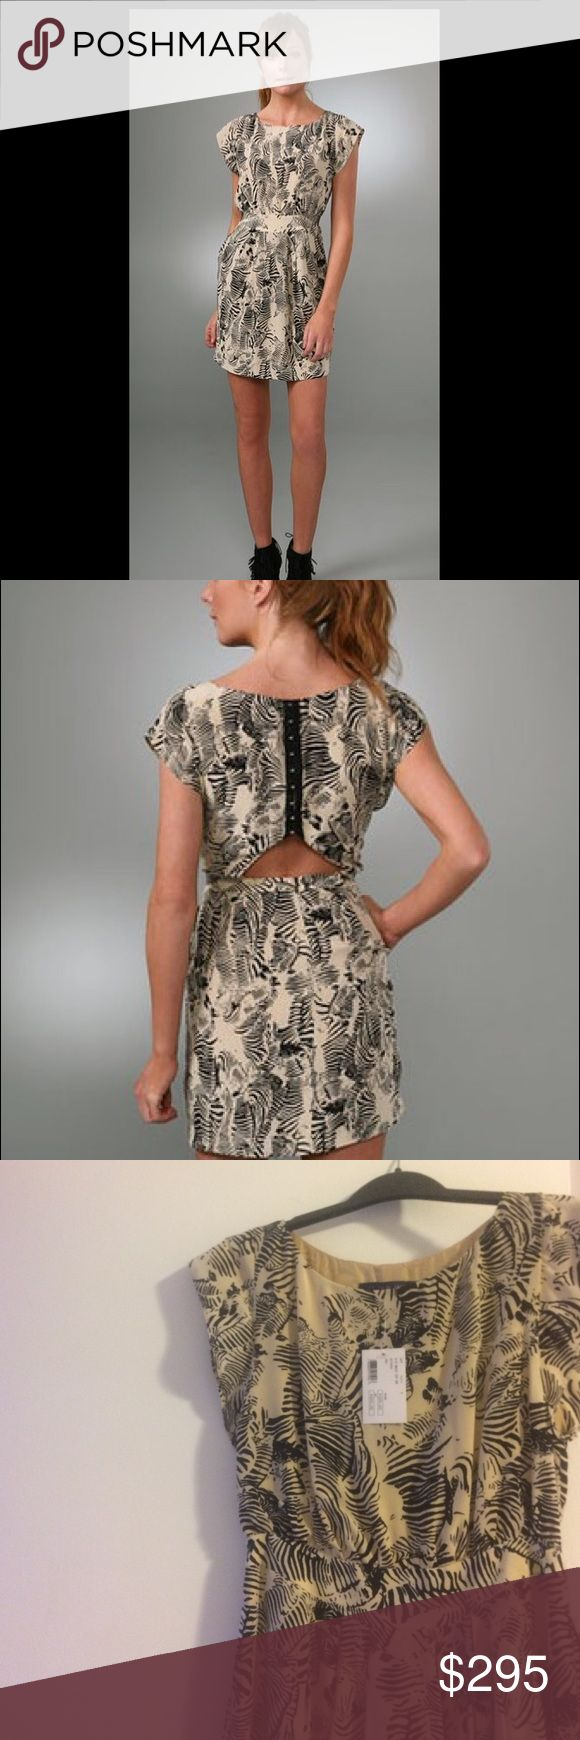 NWT Of Two Minds Zebra Print dress Zebra print dress. Retail price of $320. Cut out and clasped back Intermix Dresses